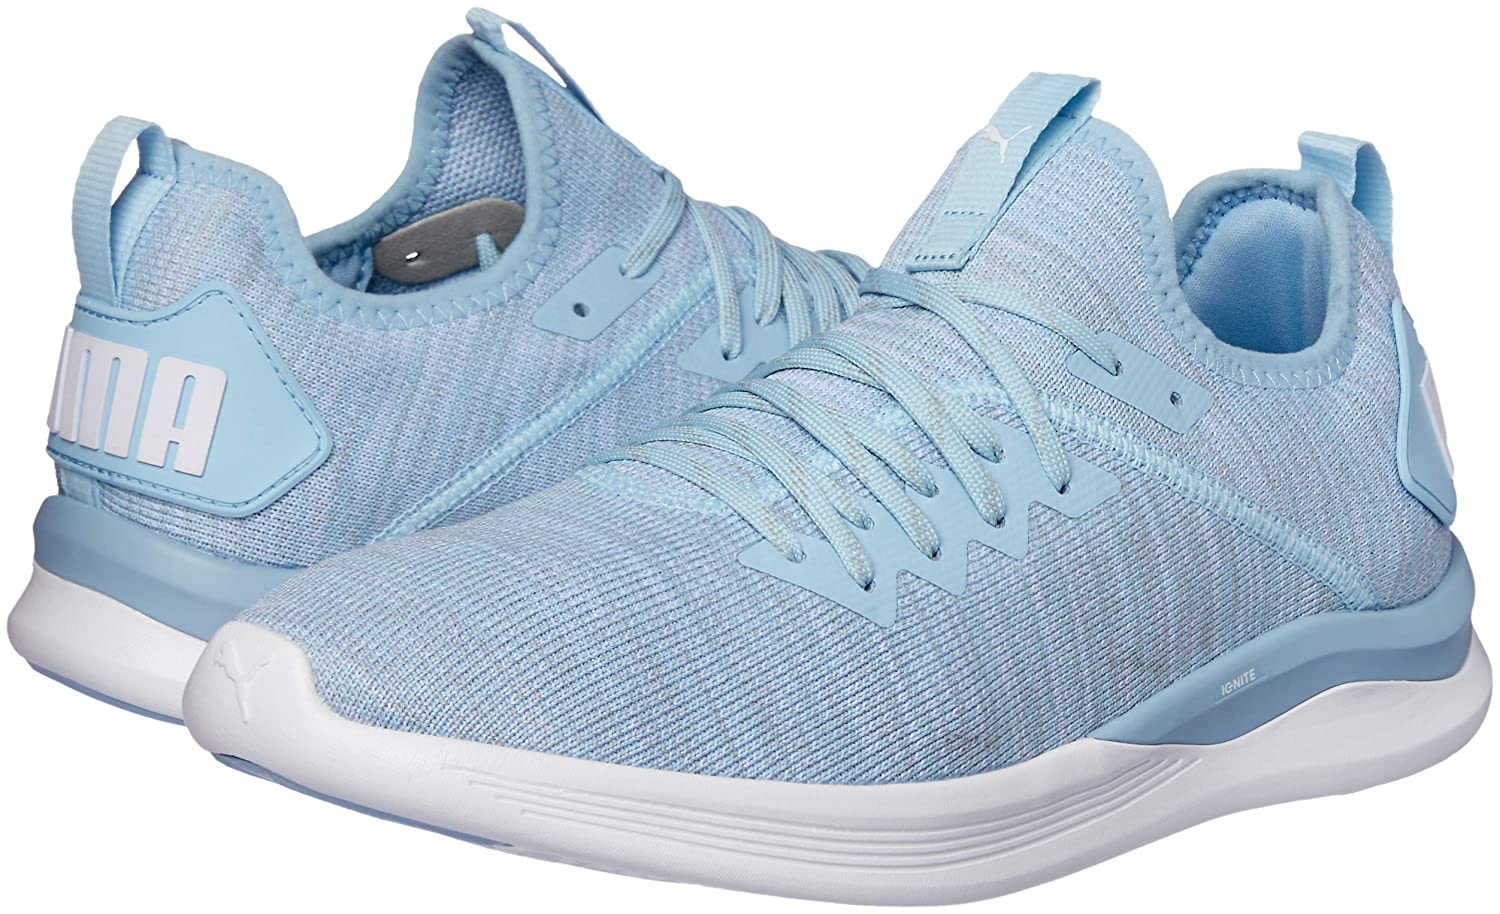 Puma Damen (Cerulean-quarry-puma Ignite Flash Evoknit WN's Laufschuhe Blau (Cerulean-quarry-puma Damen Weiß 09) 1ef865